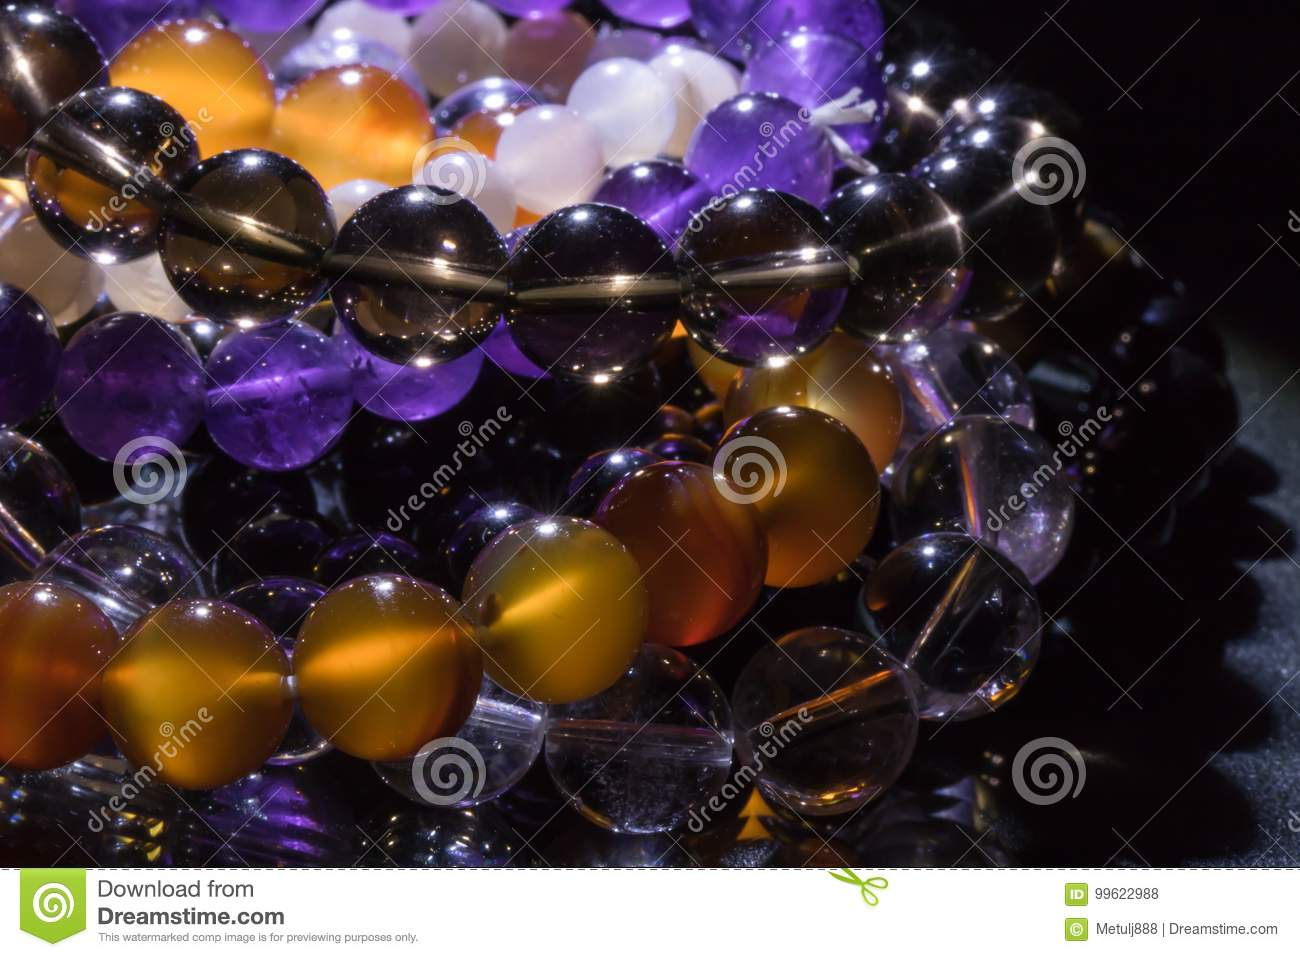 Bunch of semiprecious gemstone bracelets on black background - cornelian, amethyst, quartz